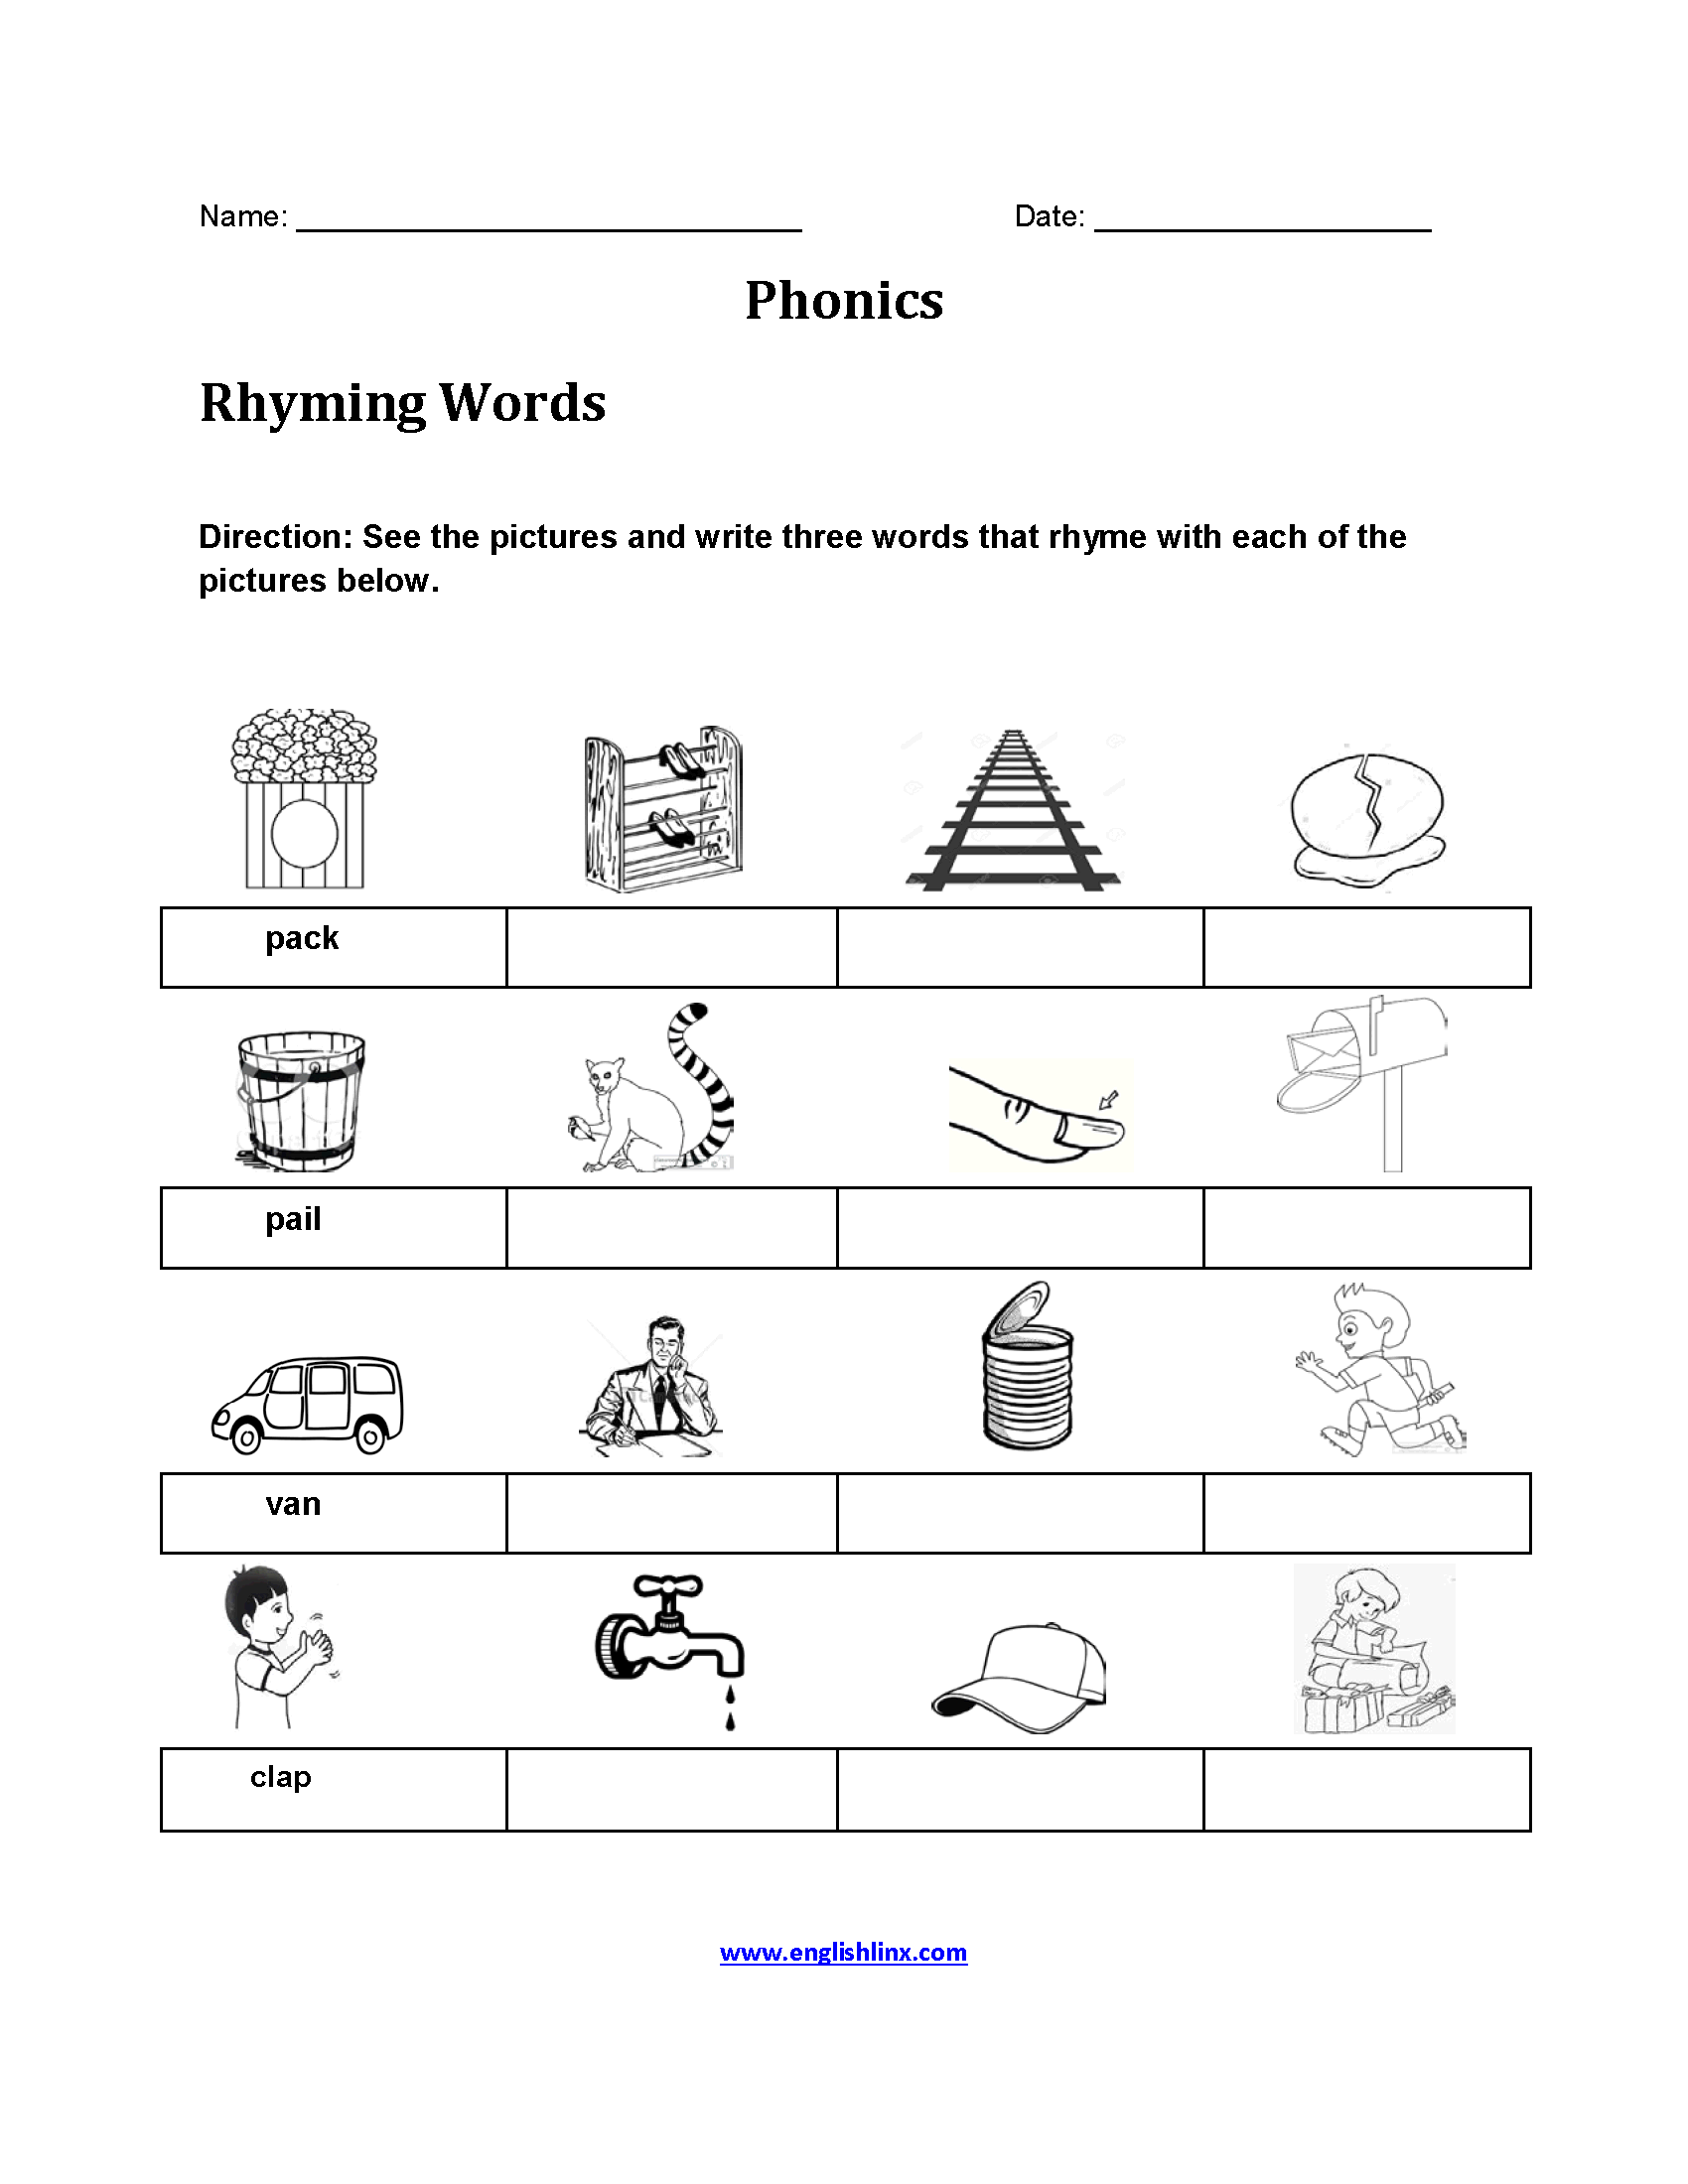 Rhyming Word Activity Printable Worksheet